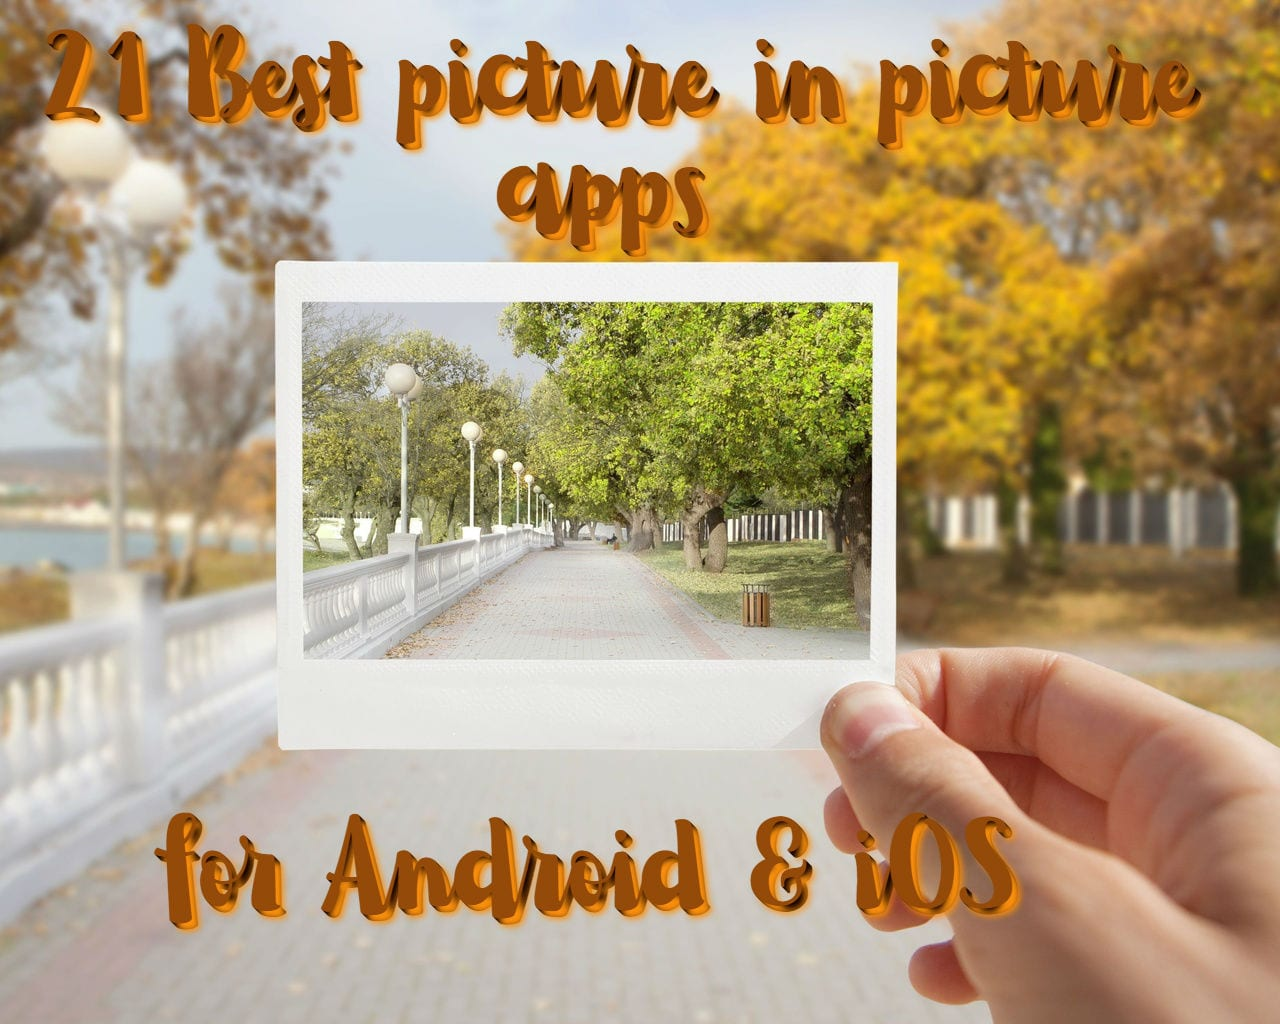 21 Best picture in picture apps for Android & iOS | Free